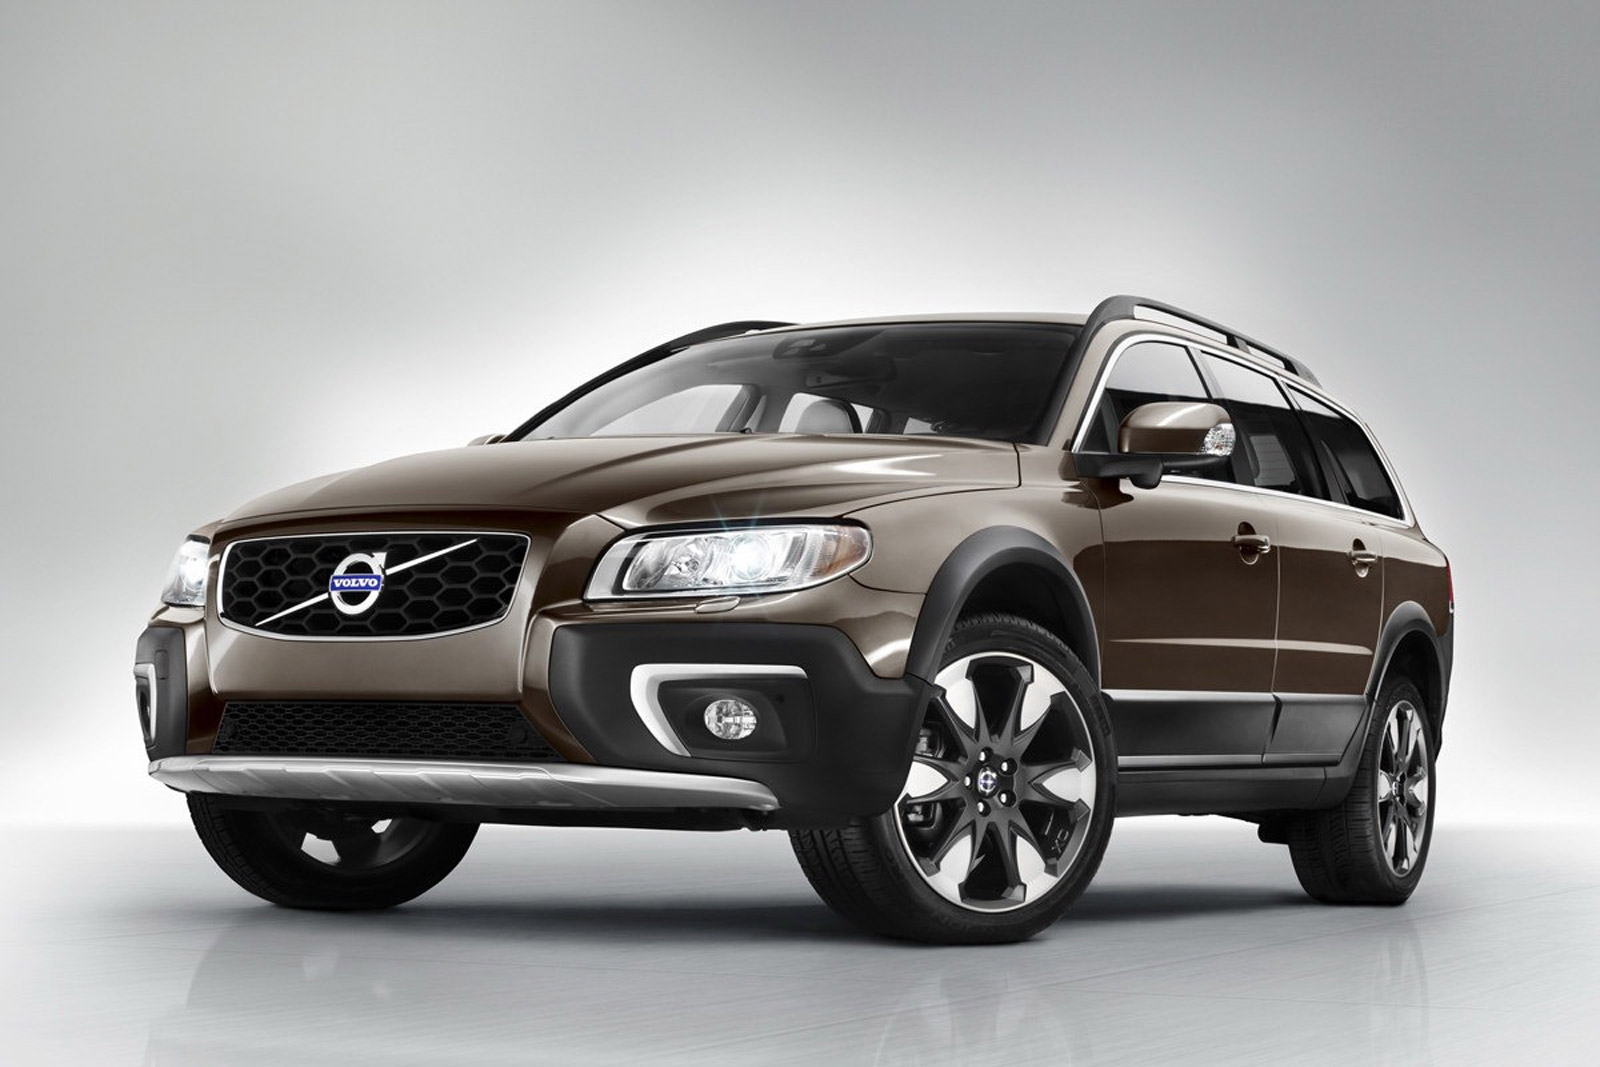 BMW Of Fresno >> 2014 Volvo XC70 Review, Ratings, Specs, Prices, and Photos - The Car Connection